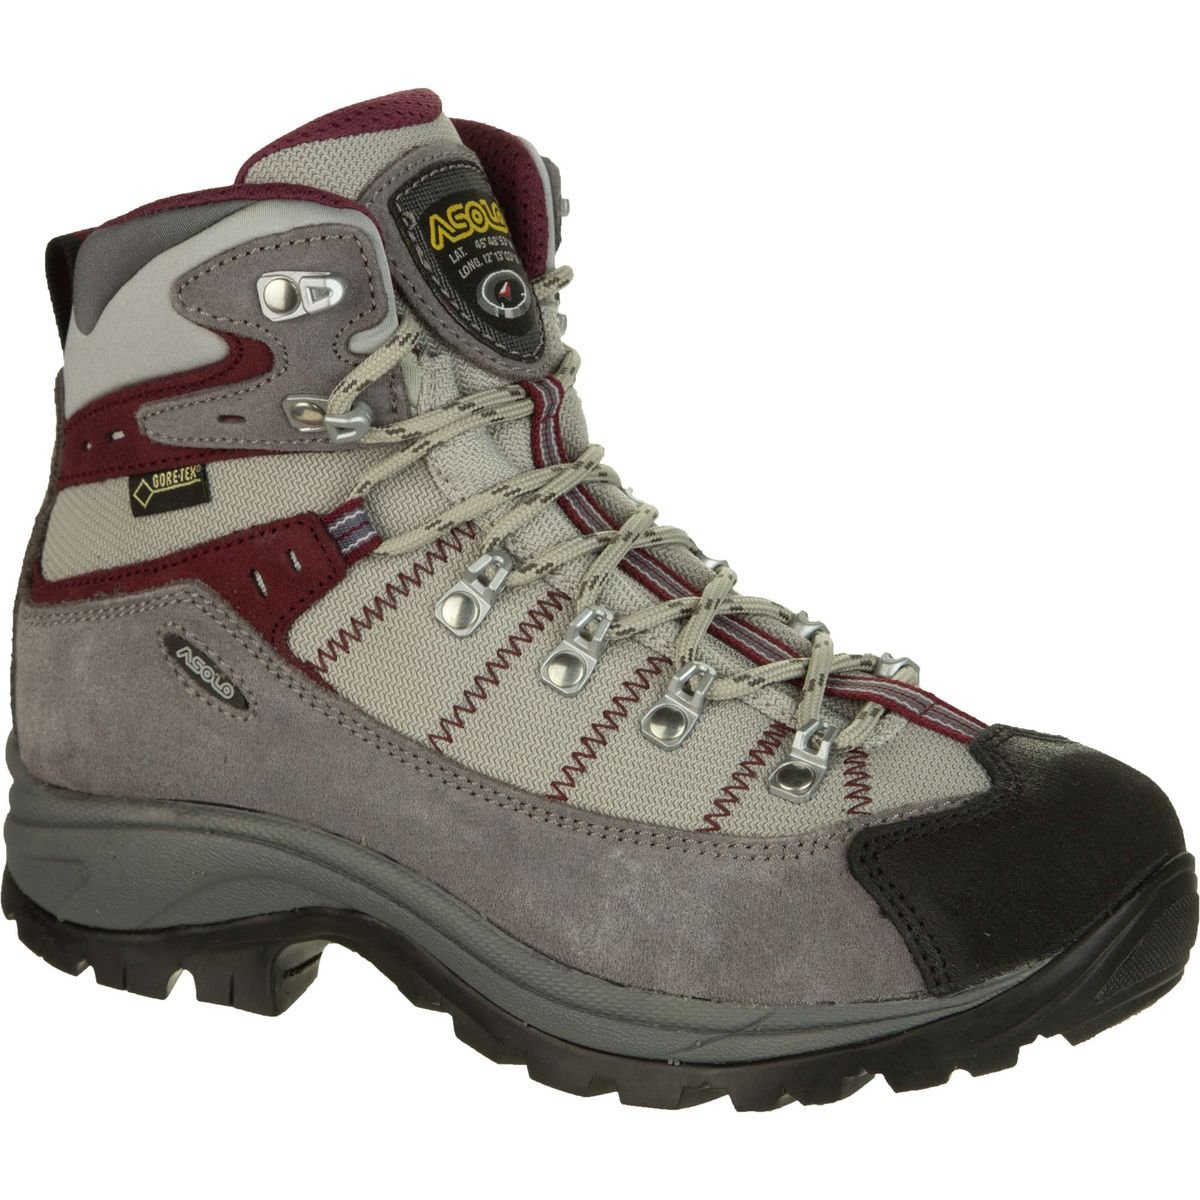 Asolo Women's Revert GV Hiking Boot B00DYPVKUM 6.5 B(M) US|Donkey/Grey